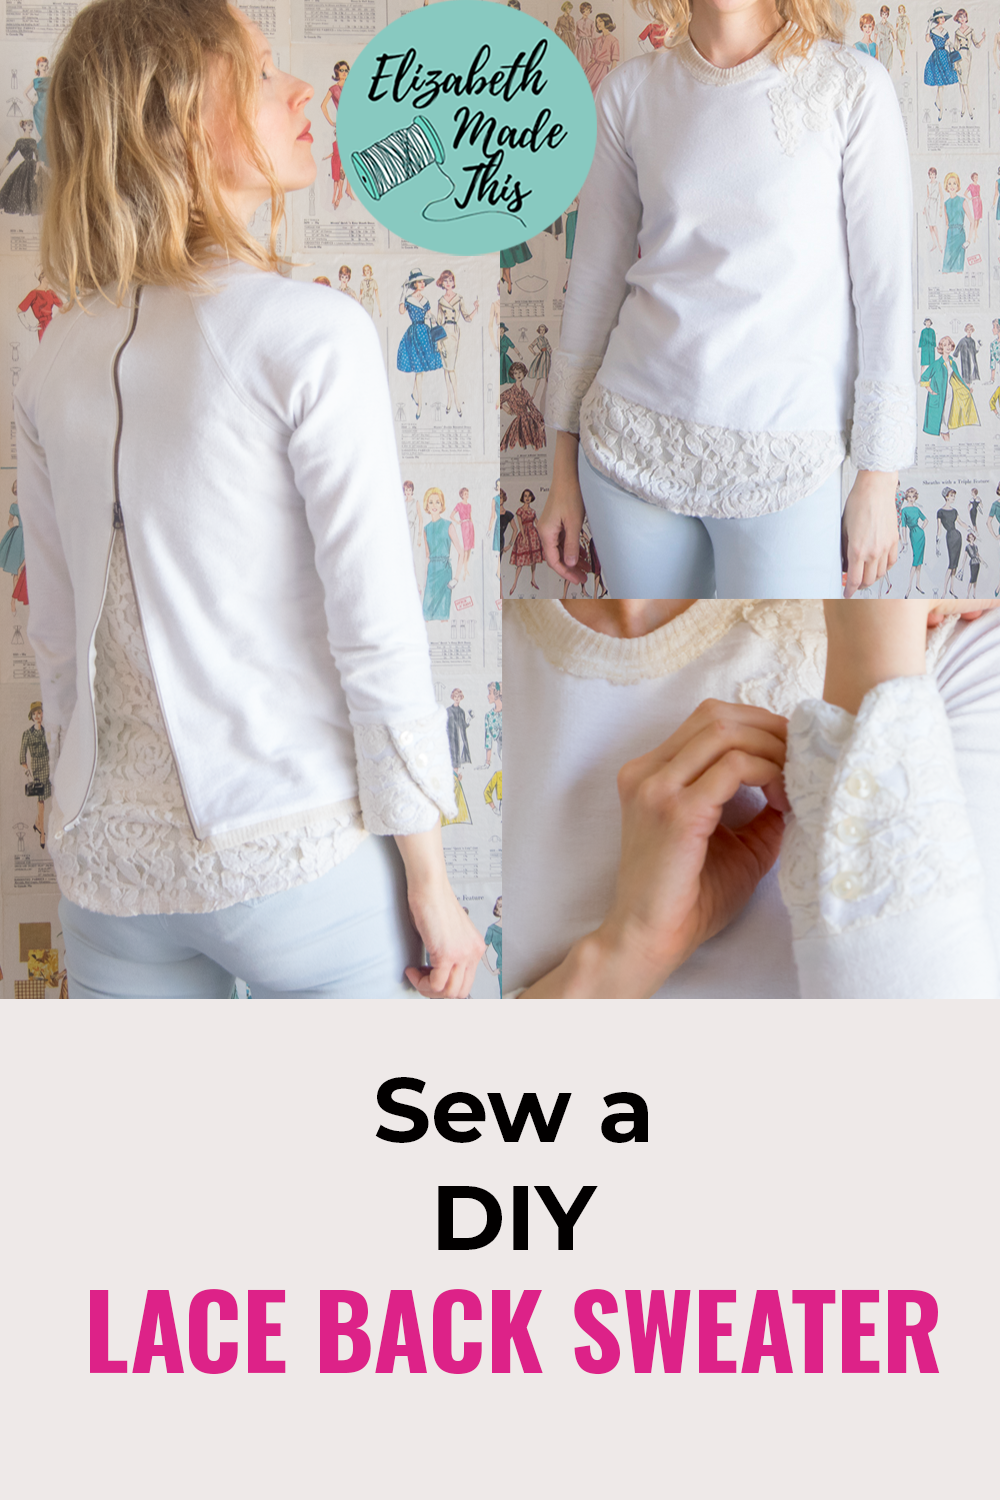 Pinterest image of lace back sweater